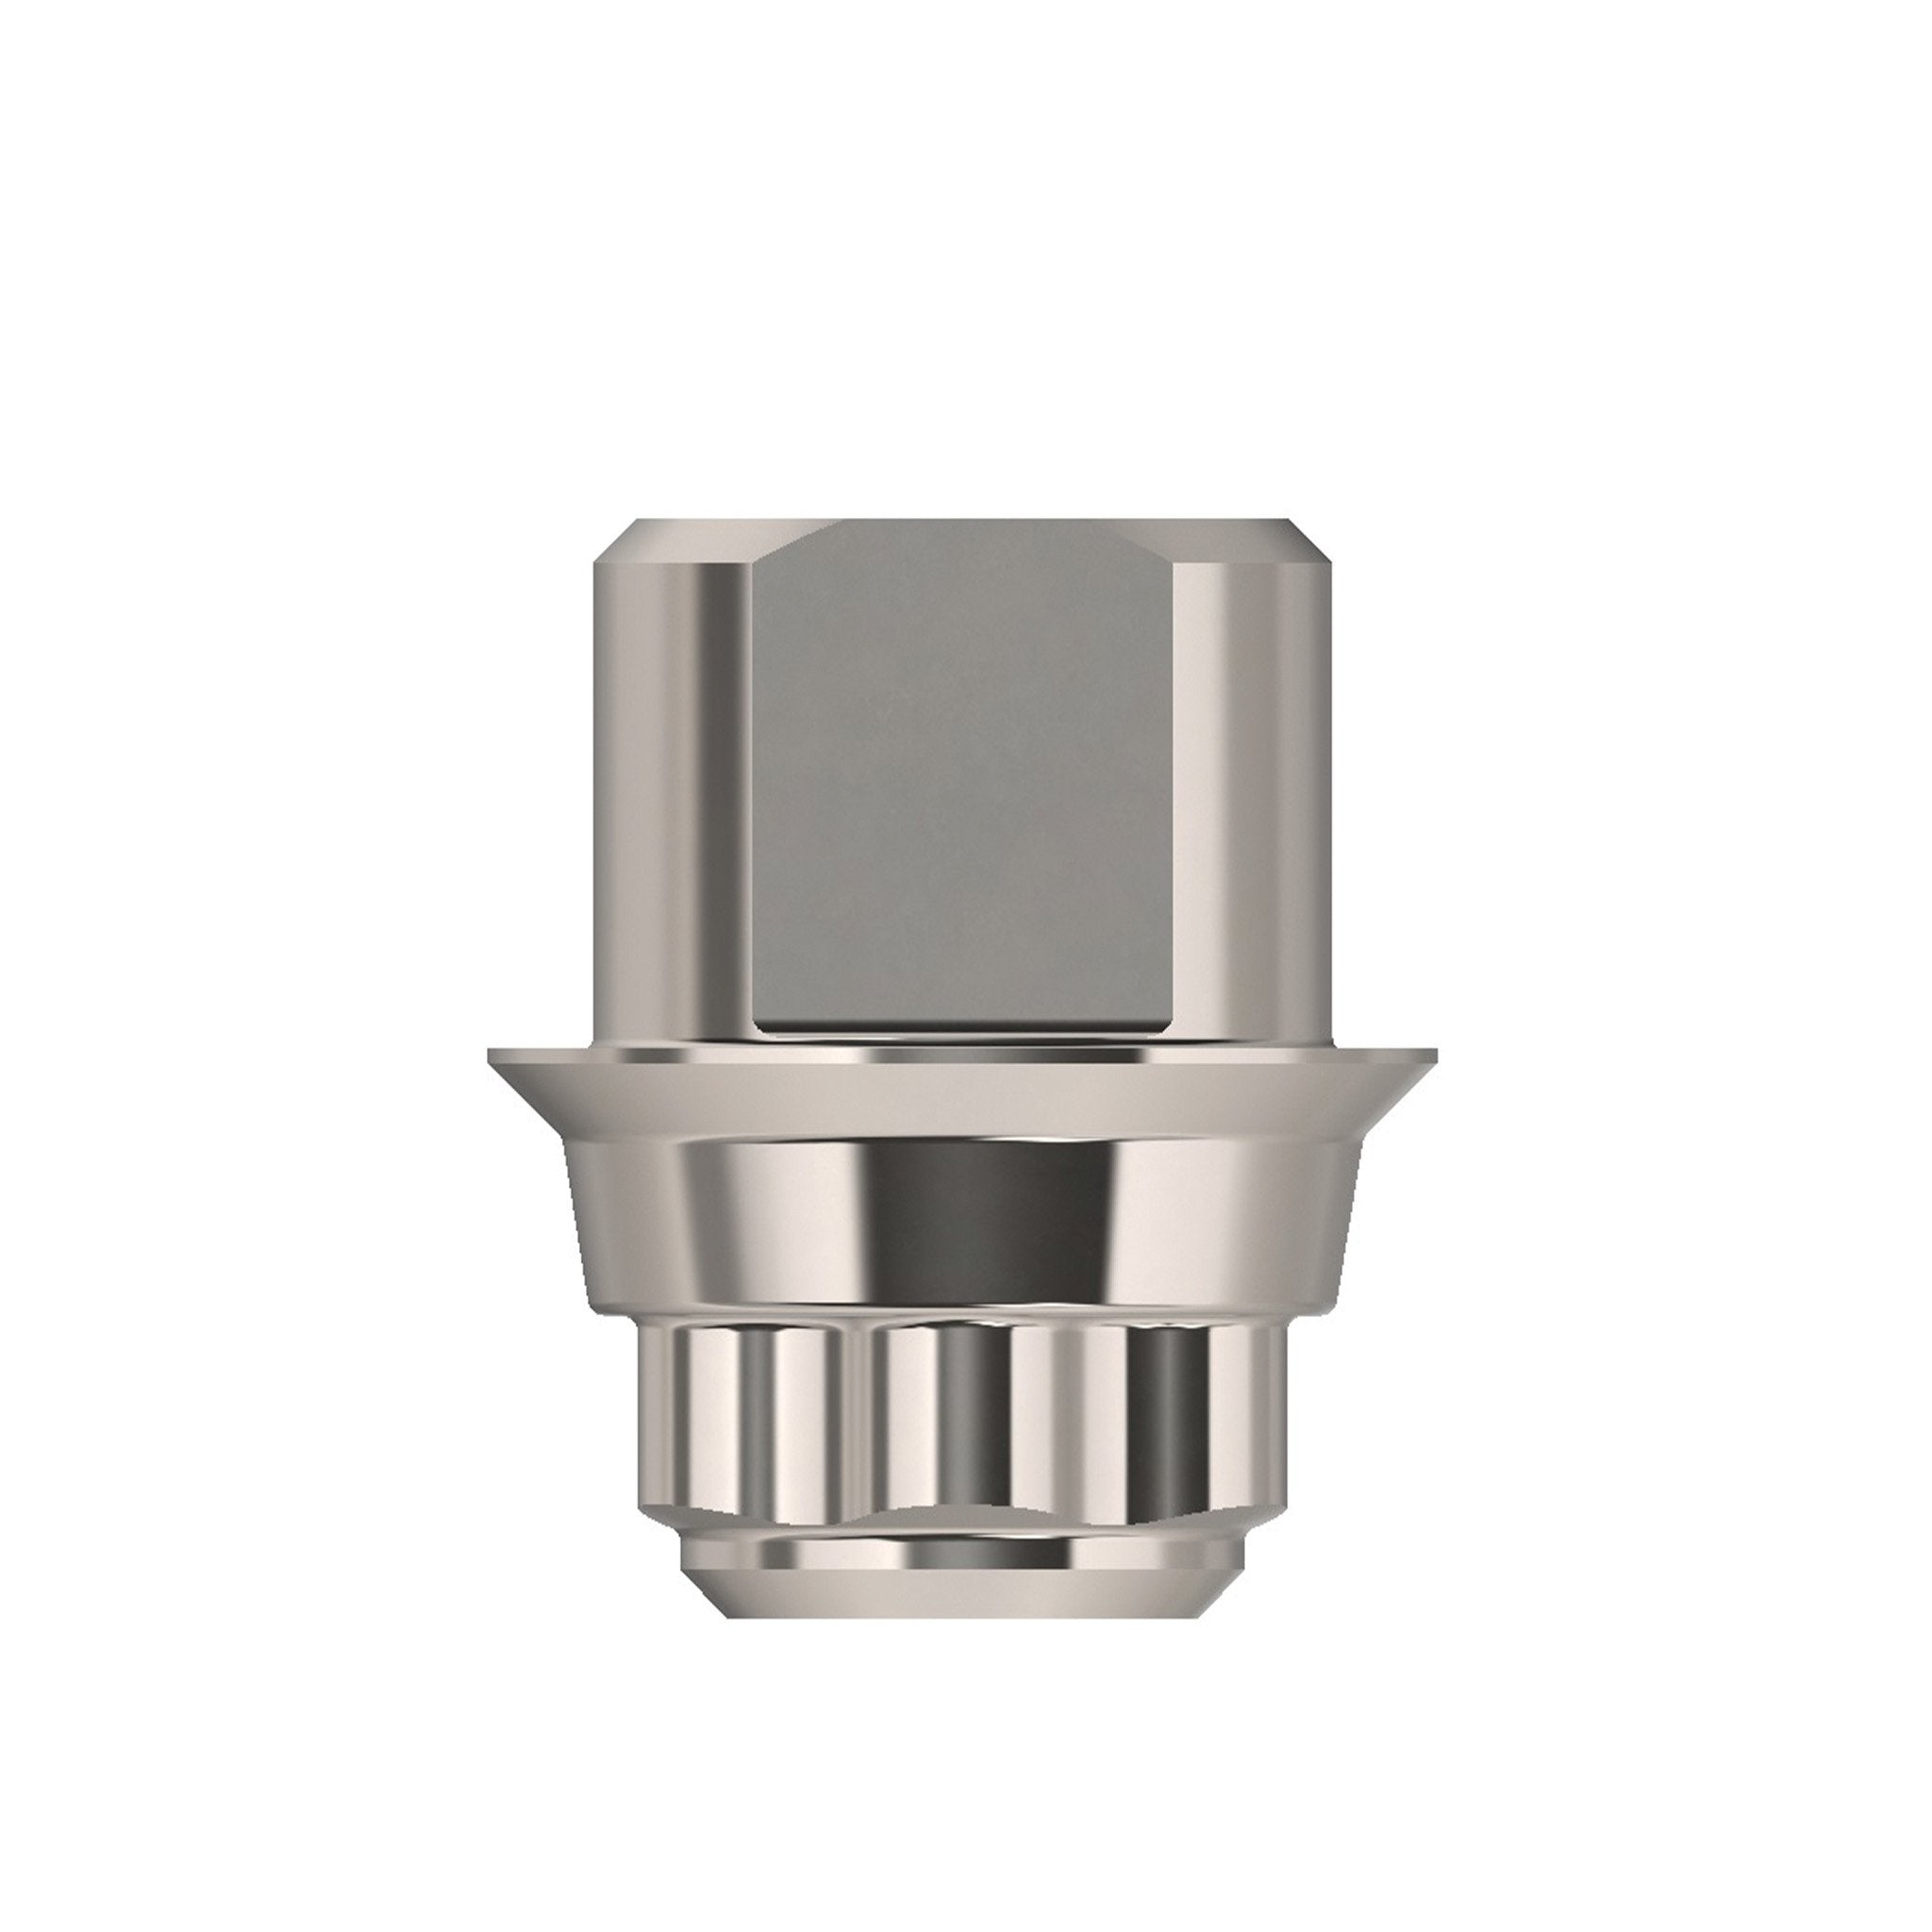 TiLobe® Ti-Base Insert 5.0/5.5/6.5 2.4mm | K4